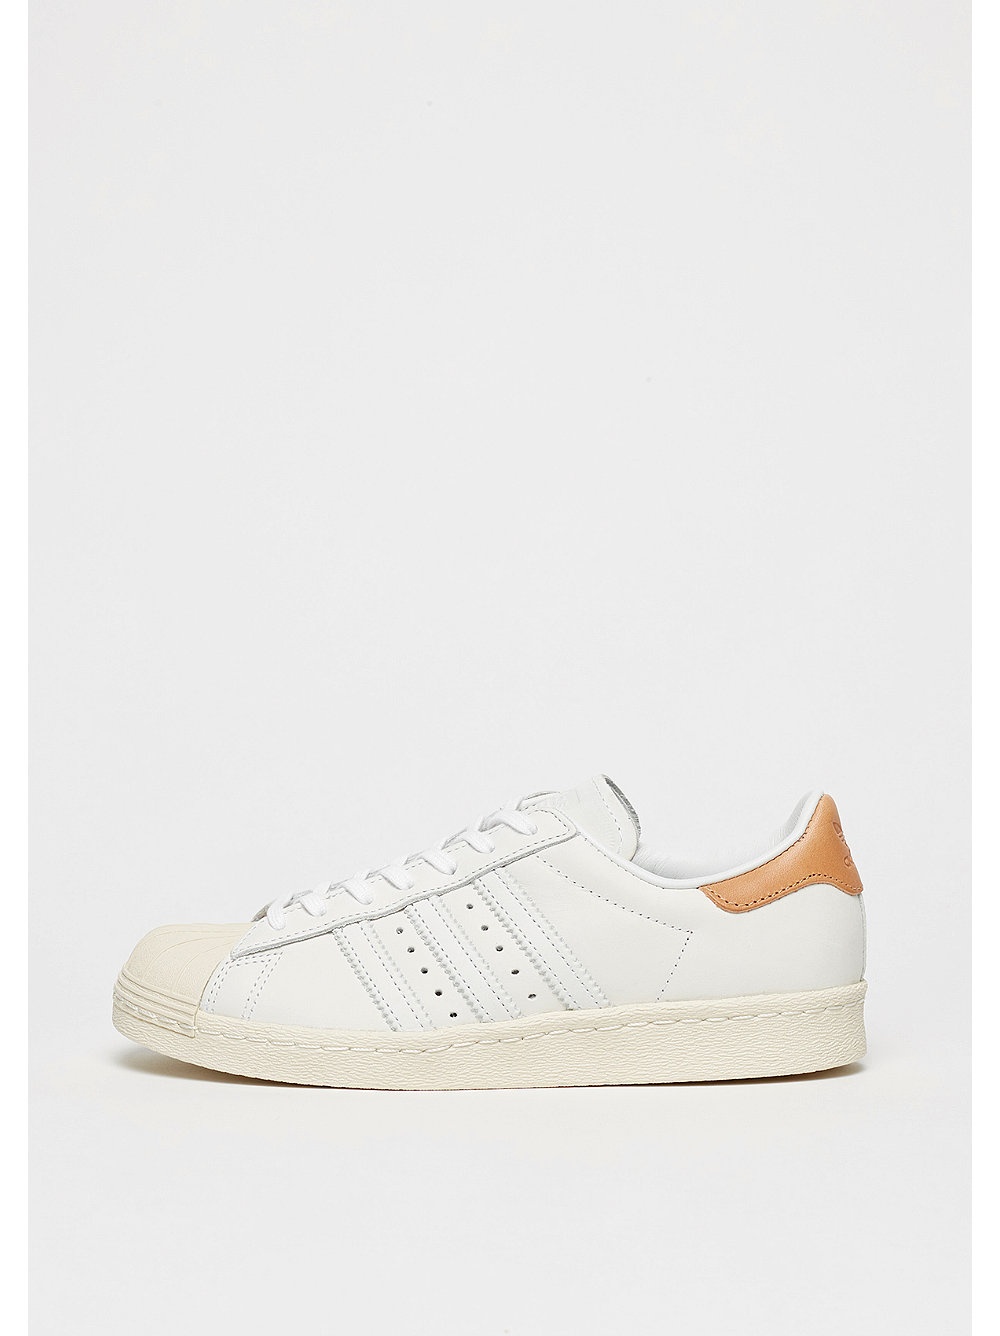 adidas schuh superstar 80s white white off white snipes. Black Bedroom Furniture Sets. Home Design Ideas